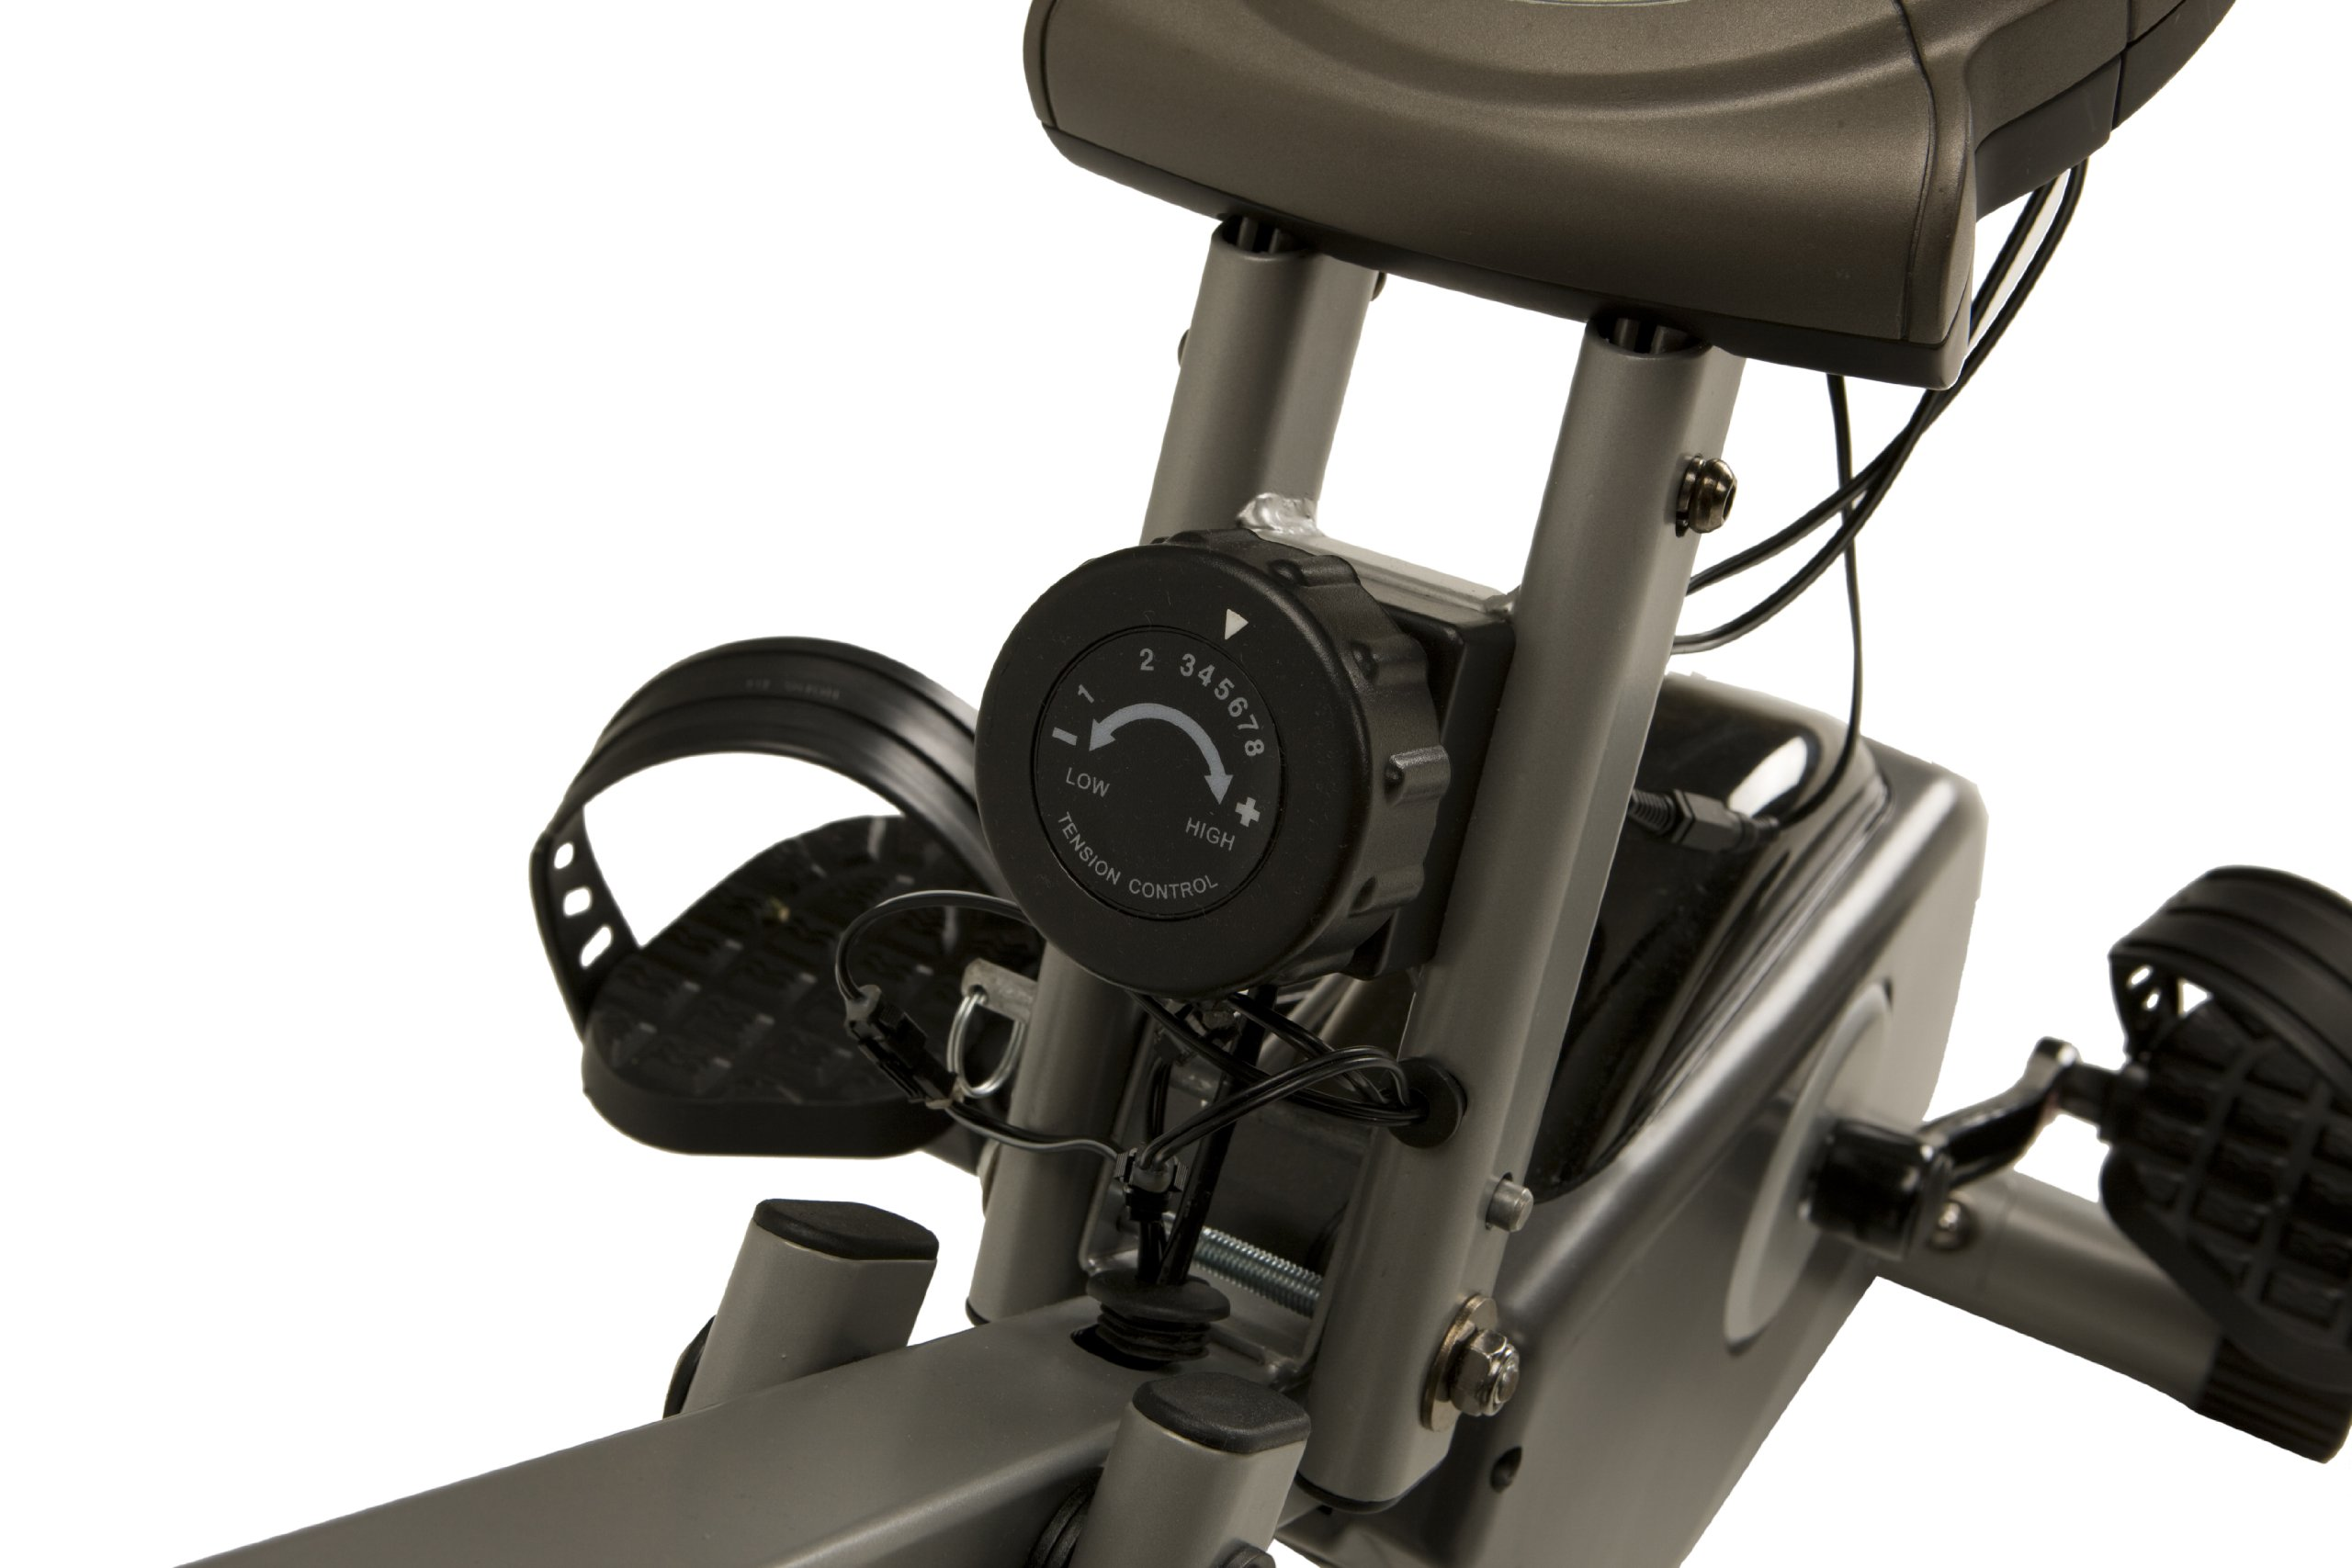 Exerpeutic 400XL Folding Recumbent Bike by Exerpeutic (Image #4)